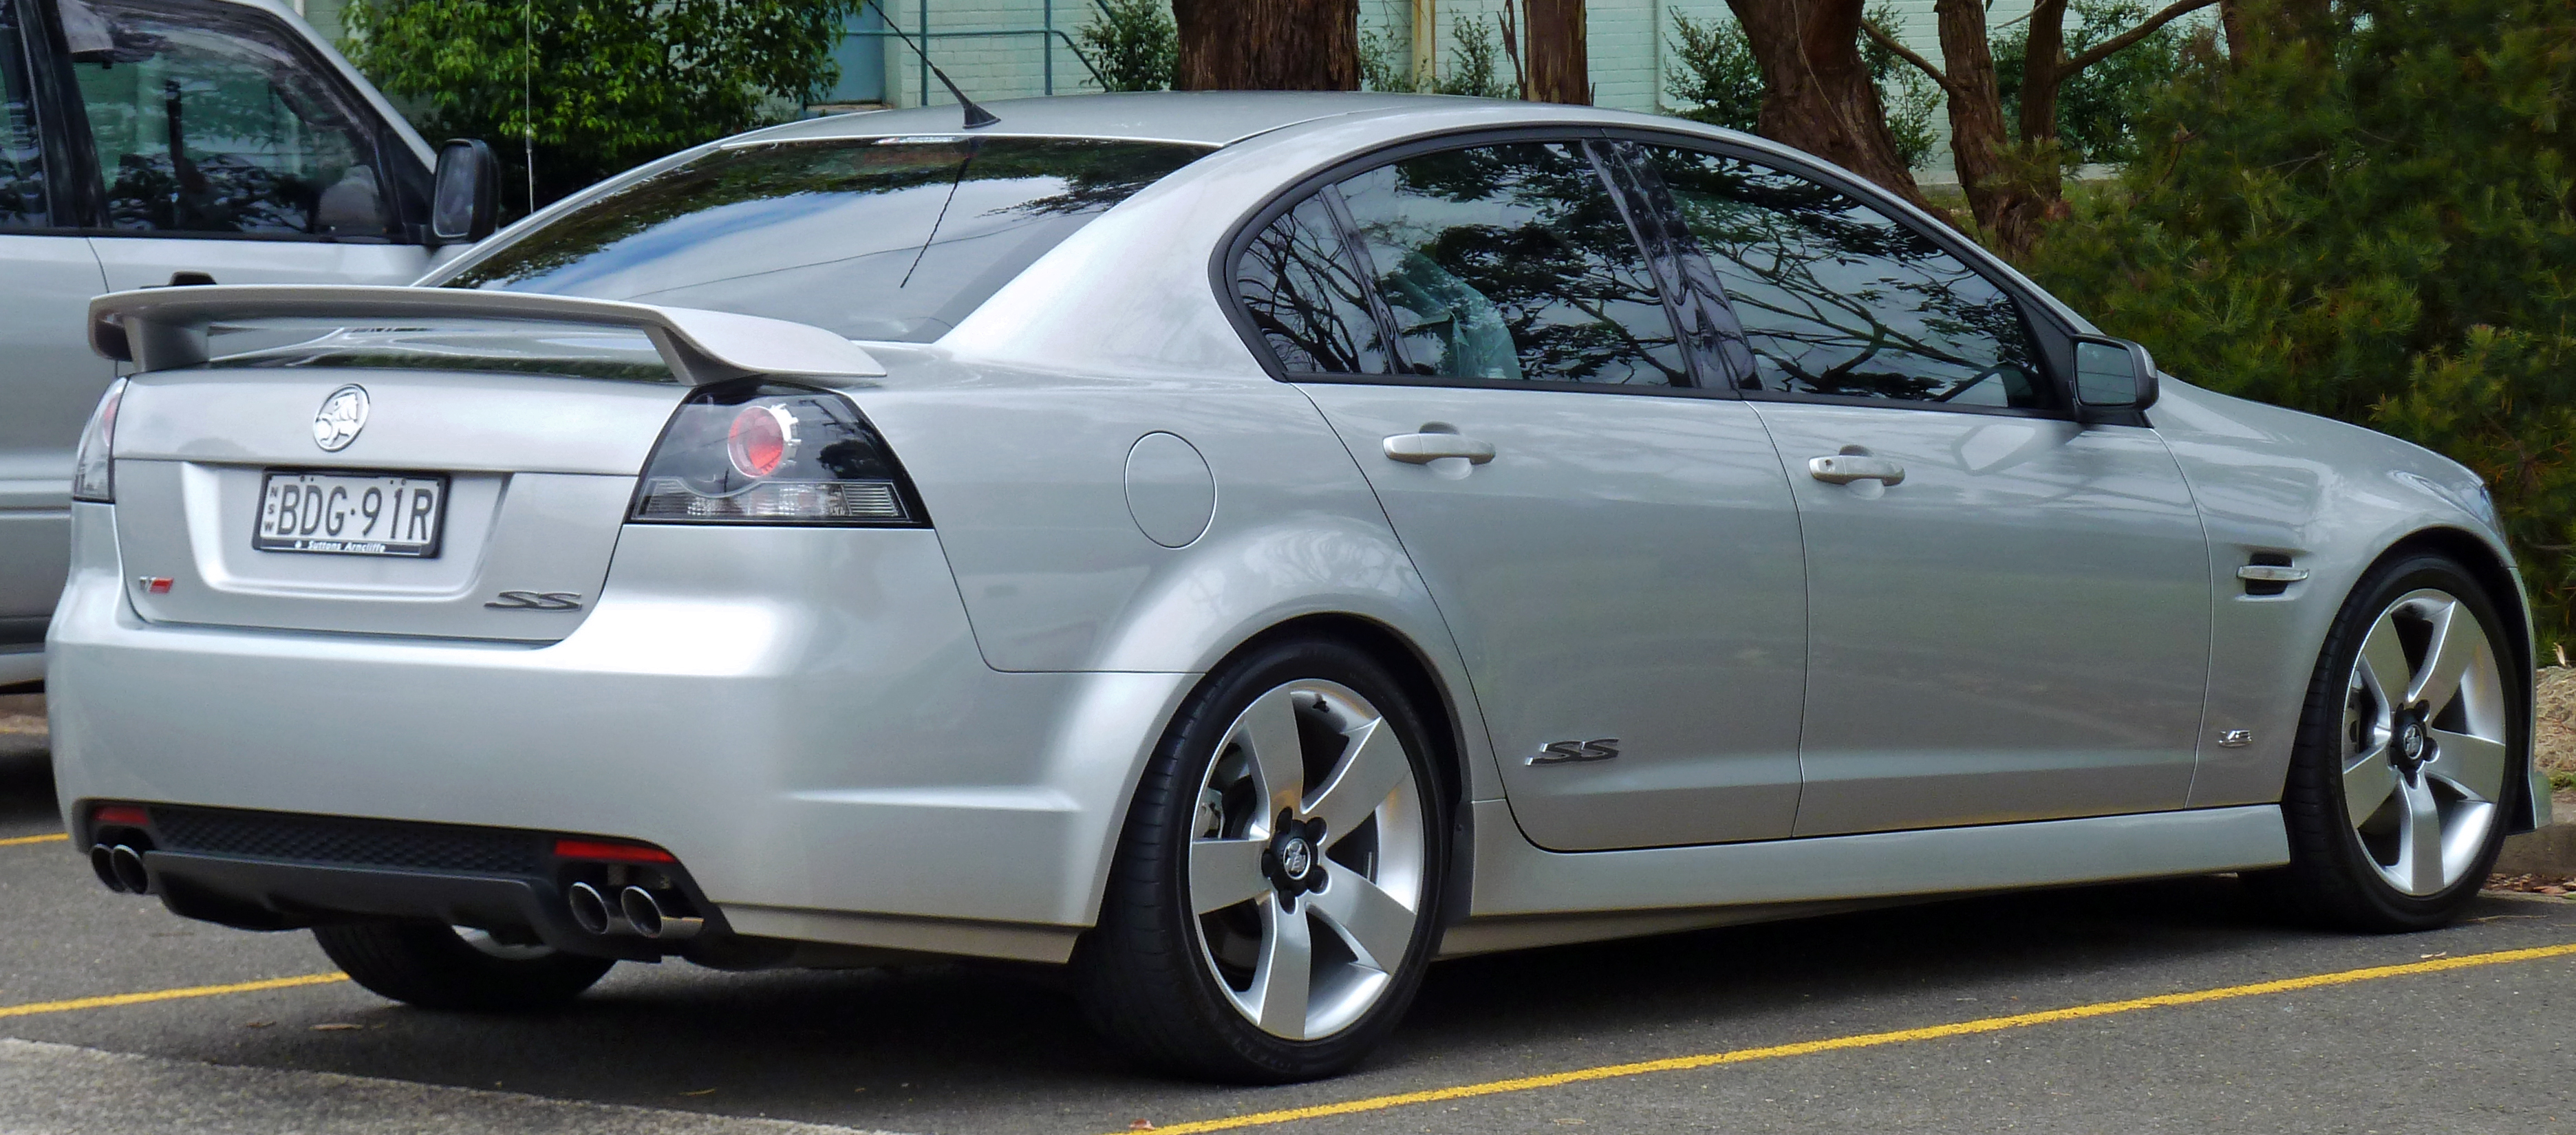 2009 Holden Commodore Photos, Informations, Articles ...